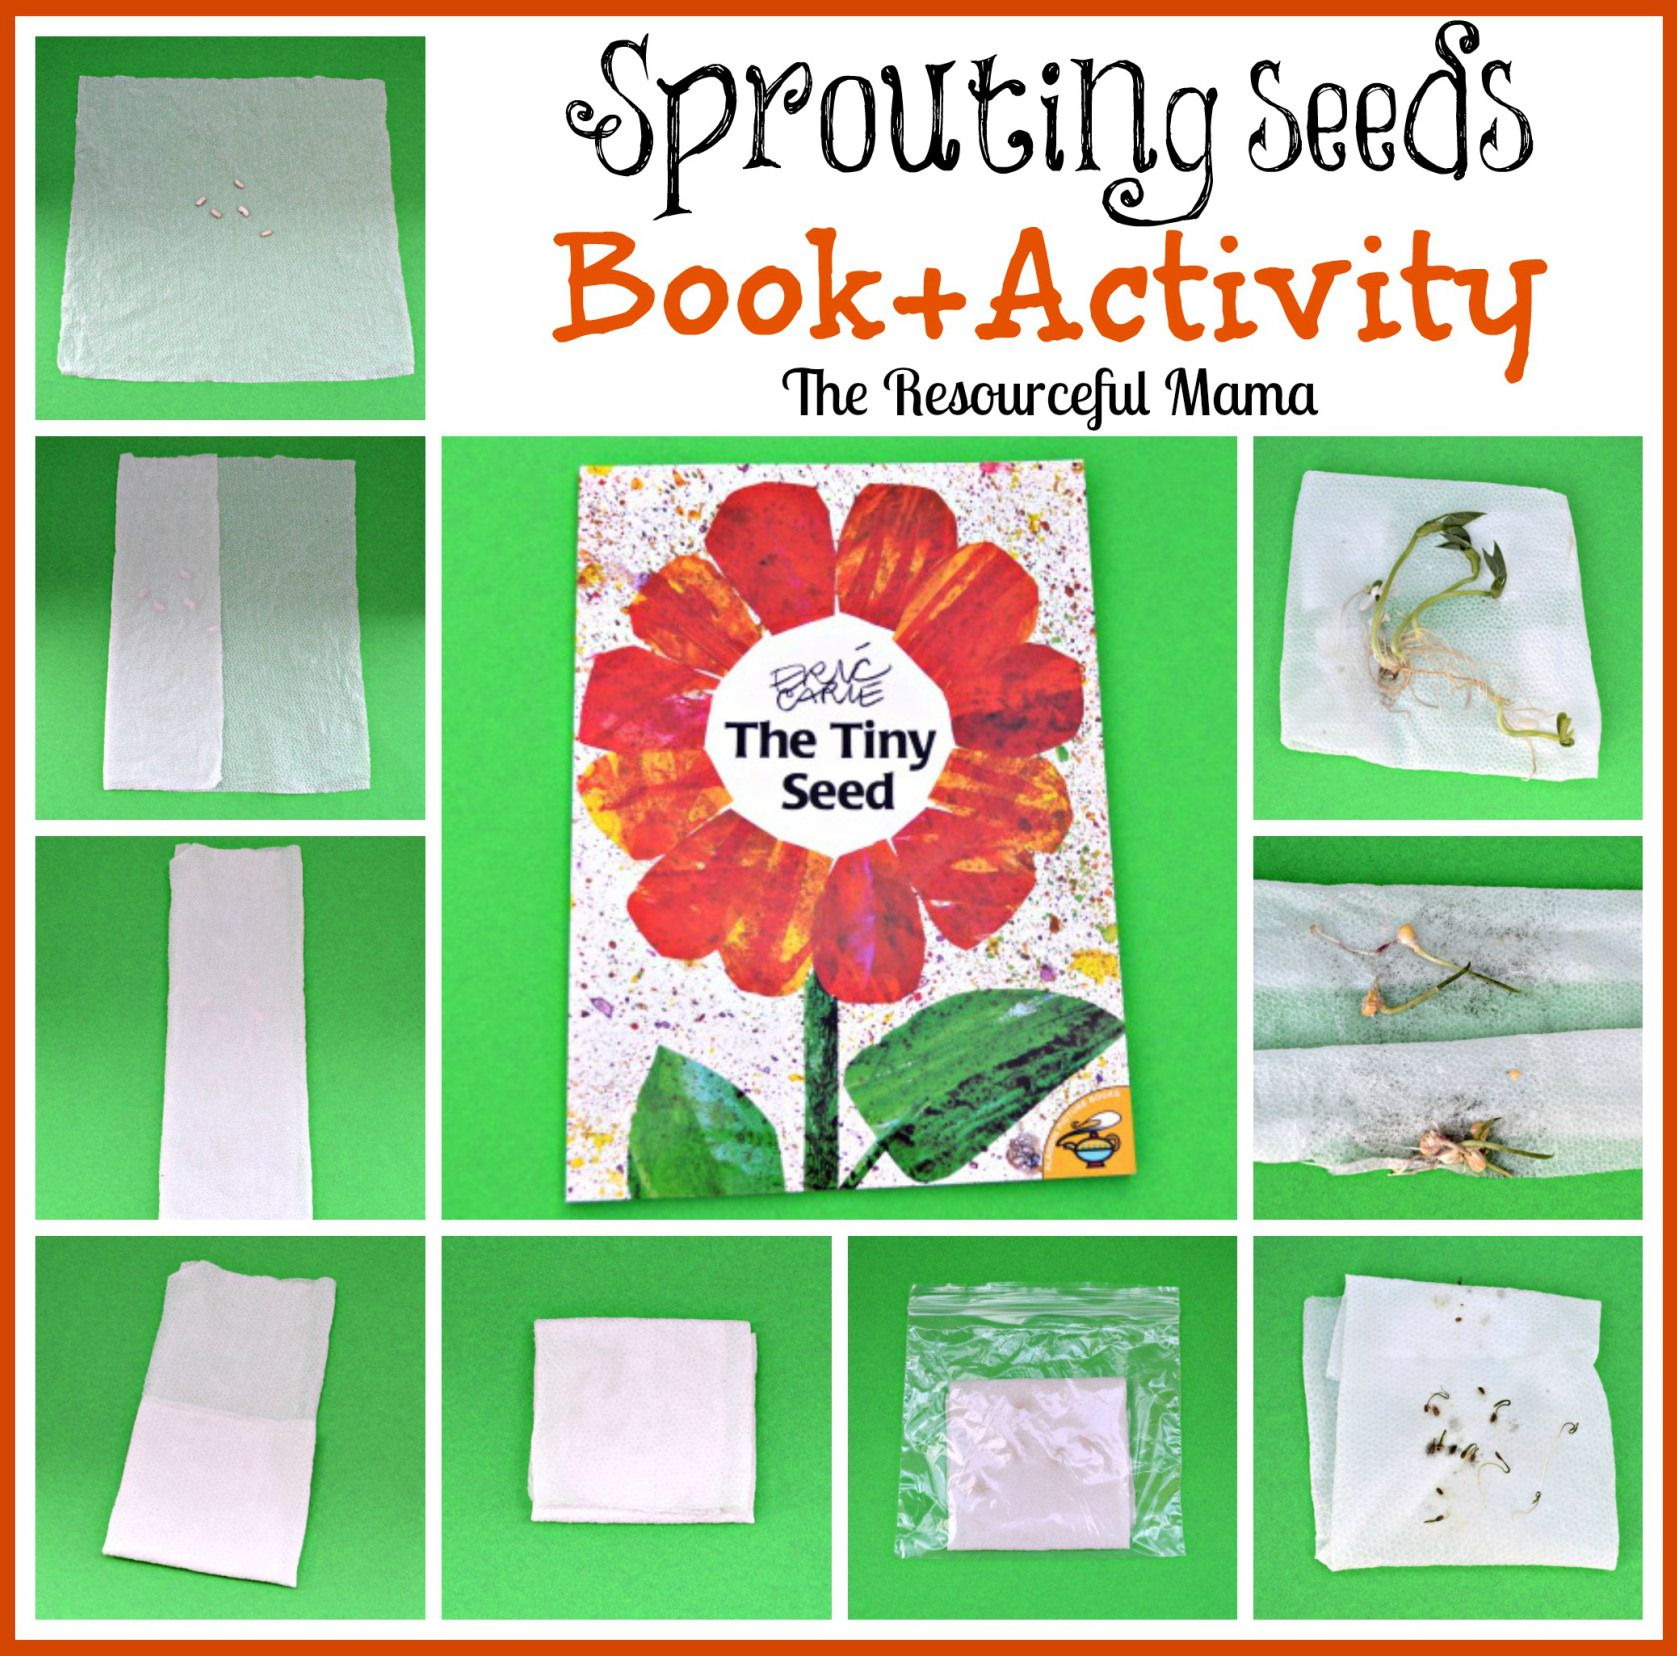 Book Craft The Resourceful Mama Seed Activities For Kids The Tiny Seed Tiny Seed Activities [ 1656 x 1677 Pixel ]